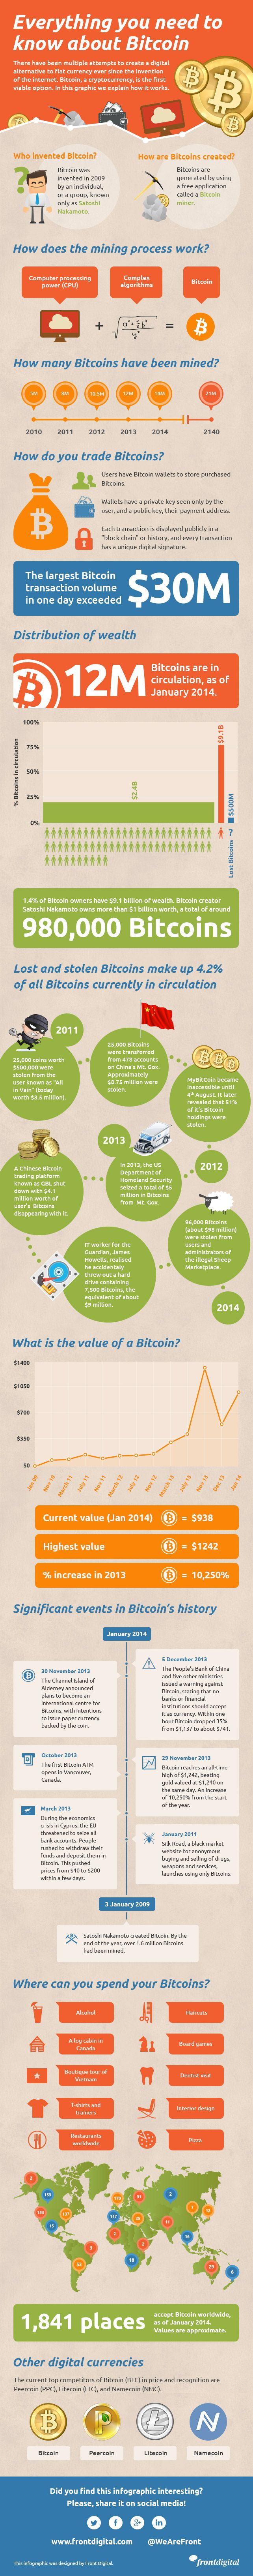 Everything you need to know about Bitcoin.